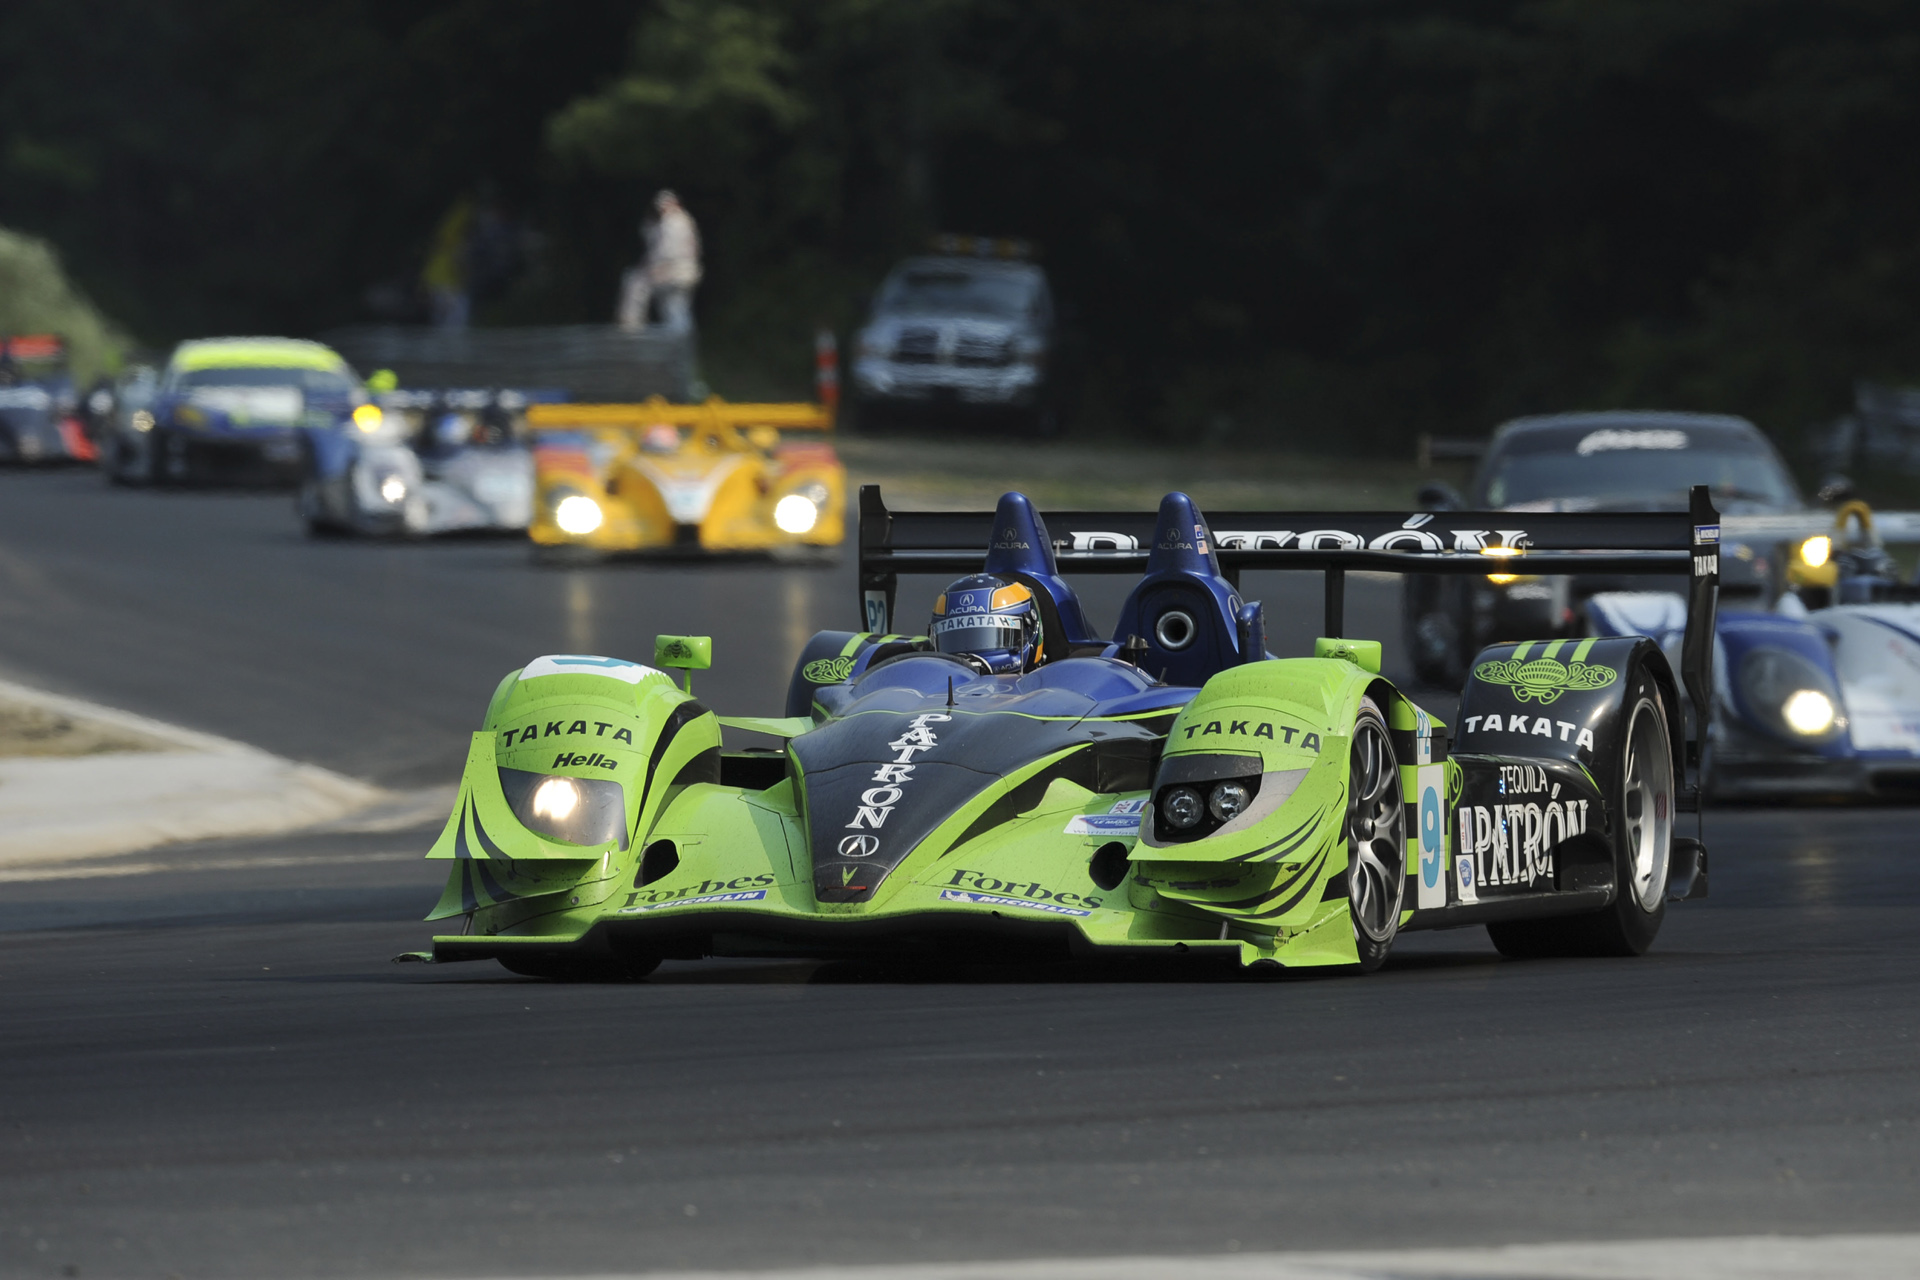 acura arx 01b photos photogallery with 9 pics carsbase